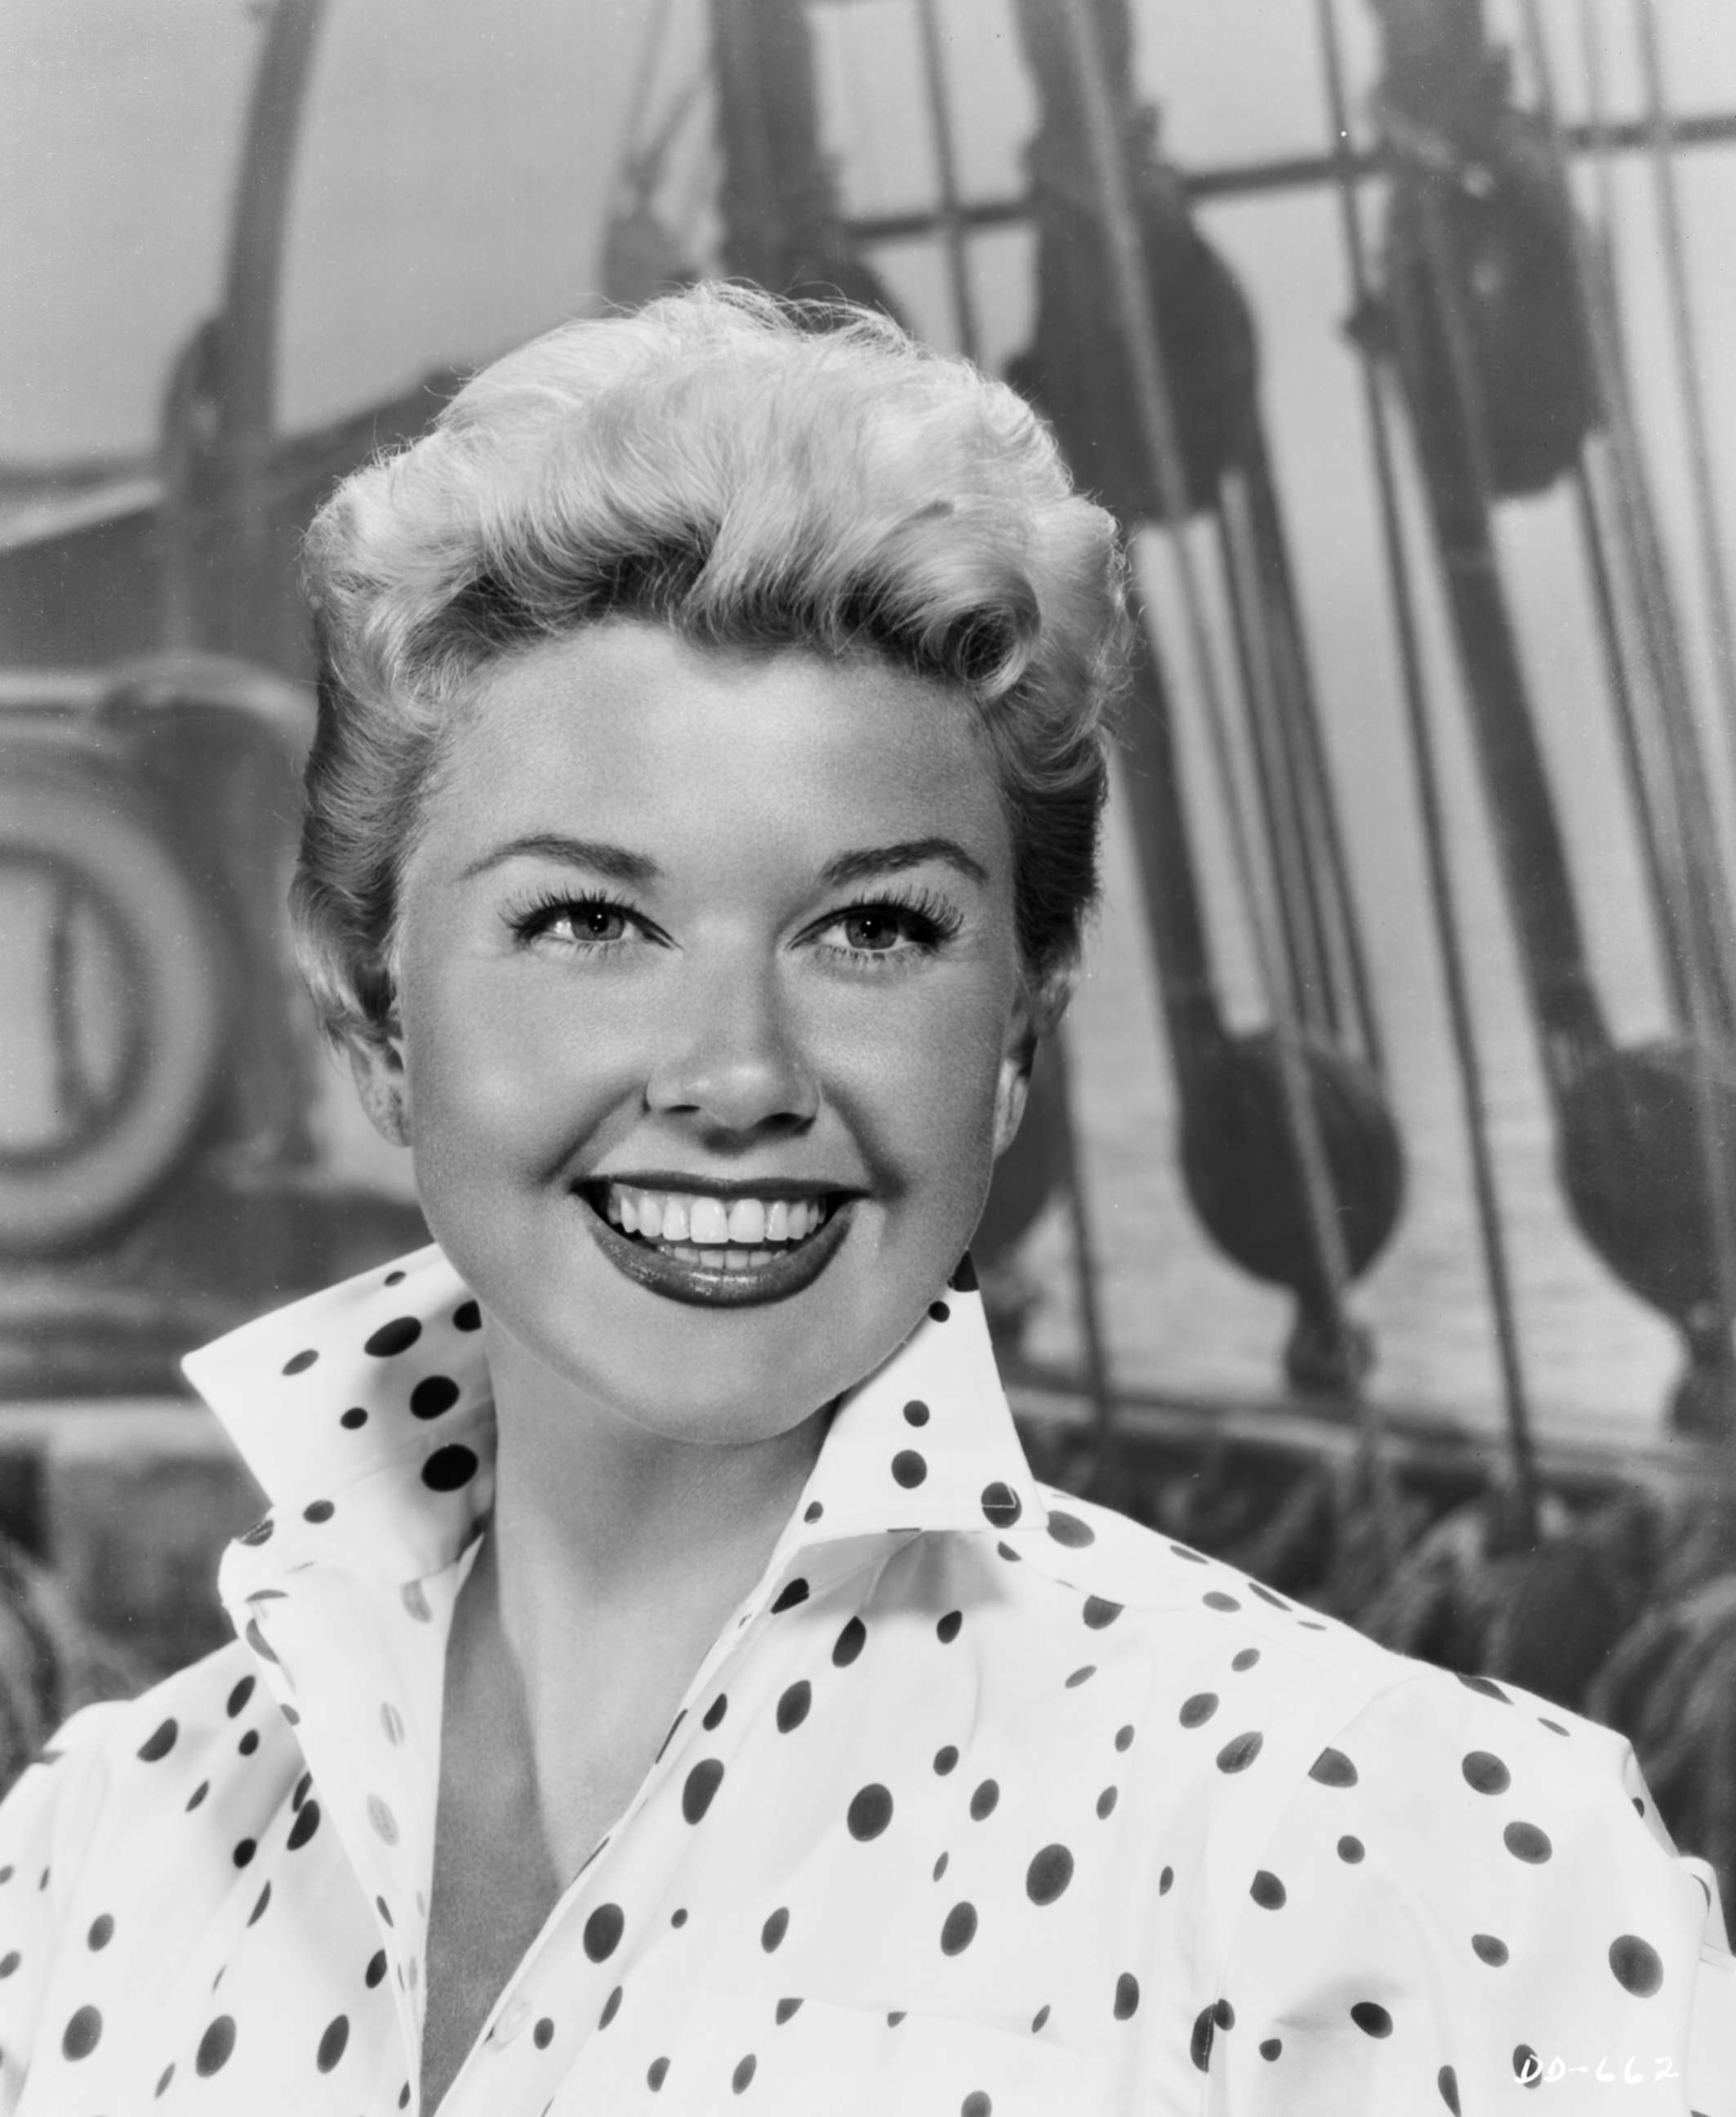 PHOTO: Doris Day seen in this 1951 file photo. - ABC News